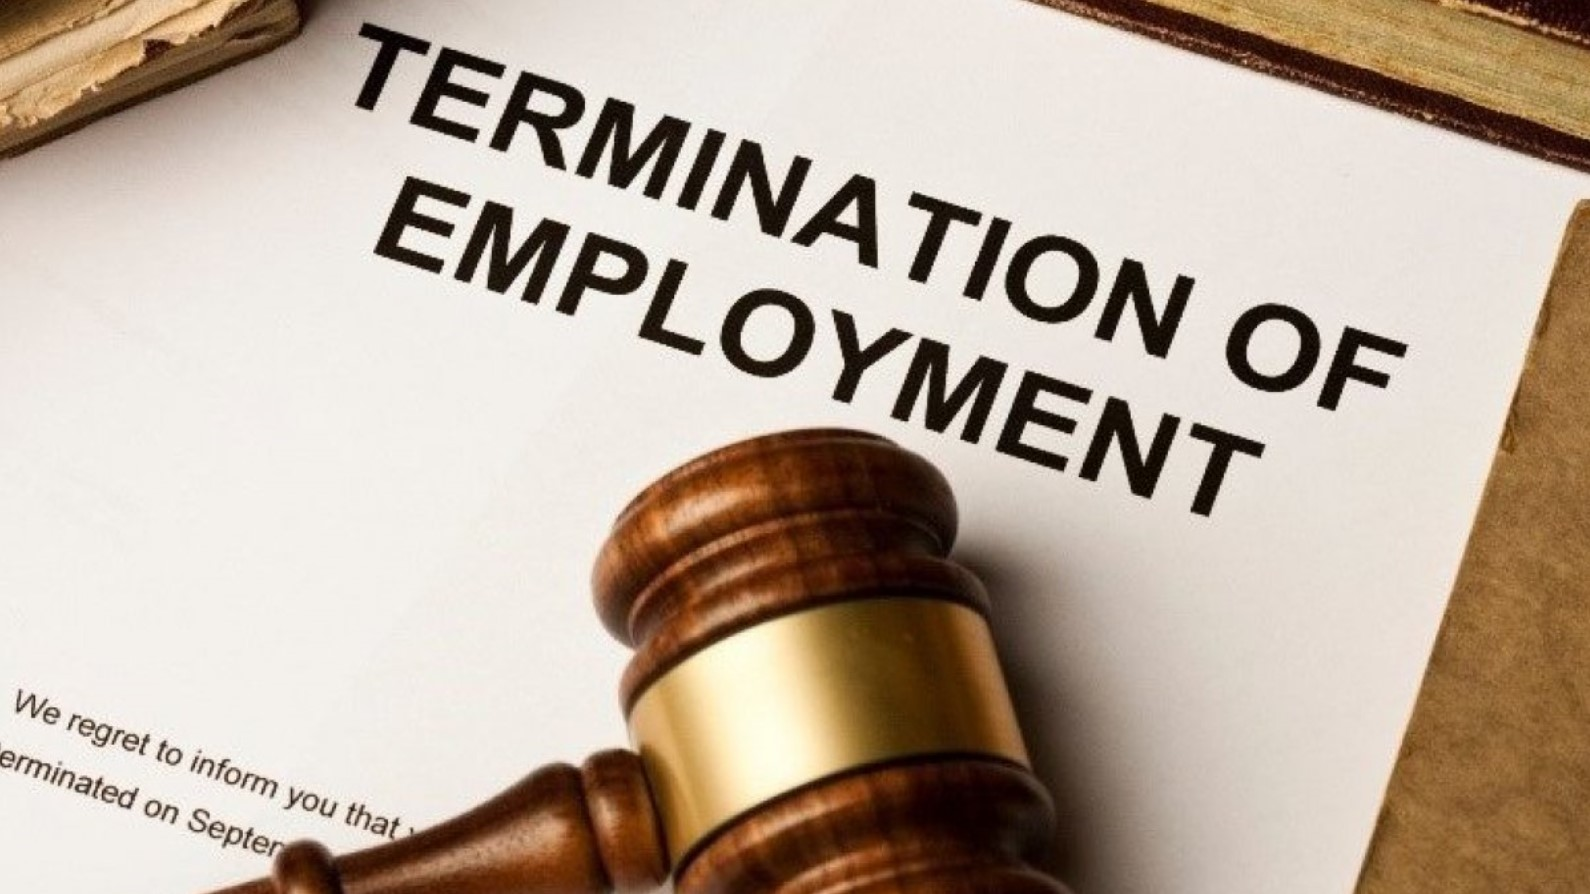 Termination Notice Duties of Employees - Know the Laws of Your Province